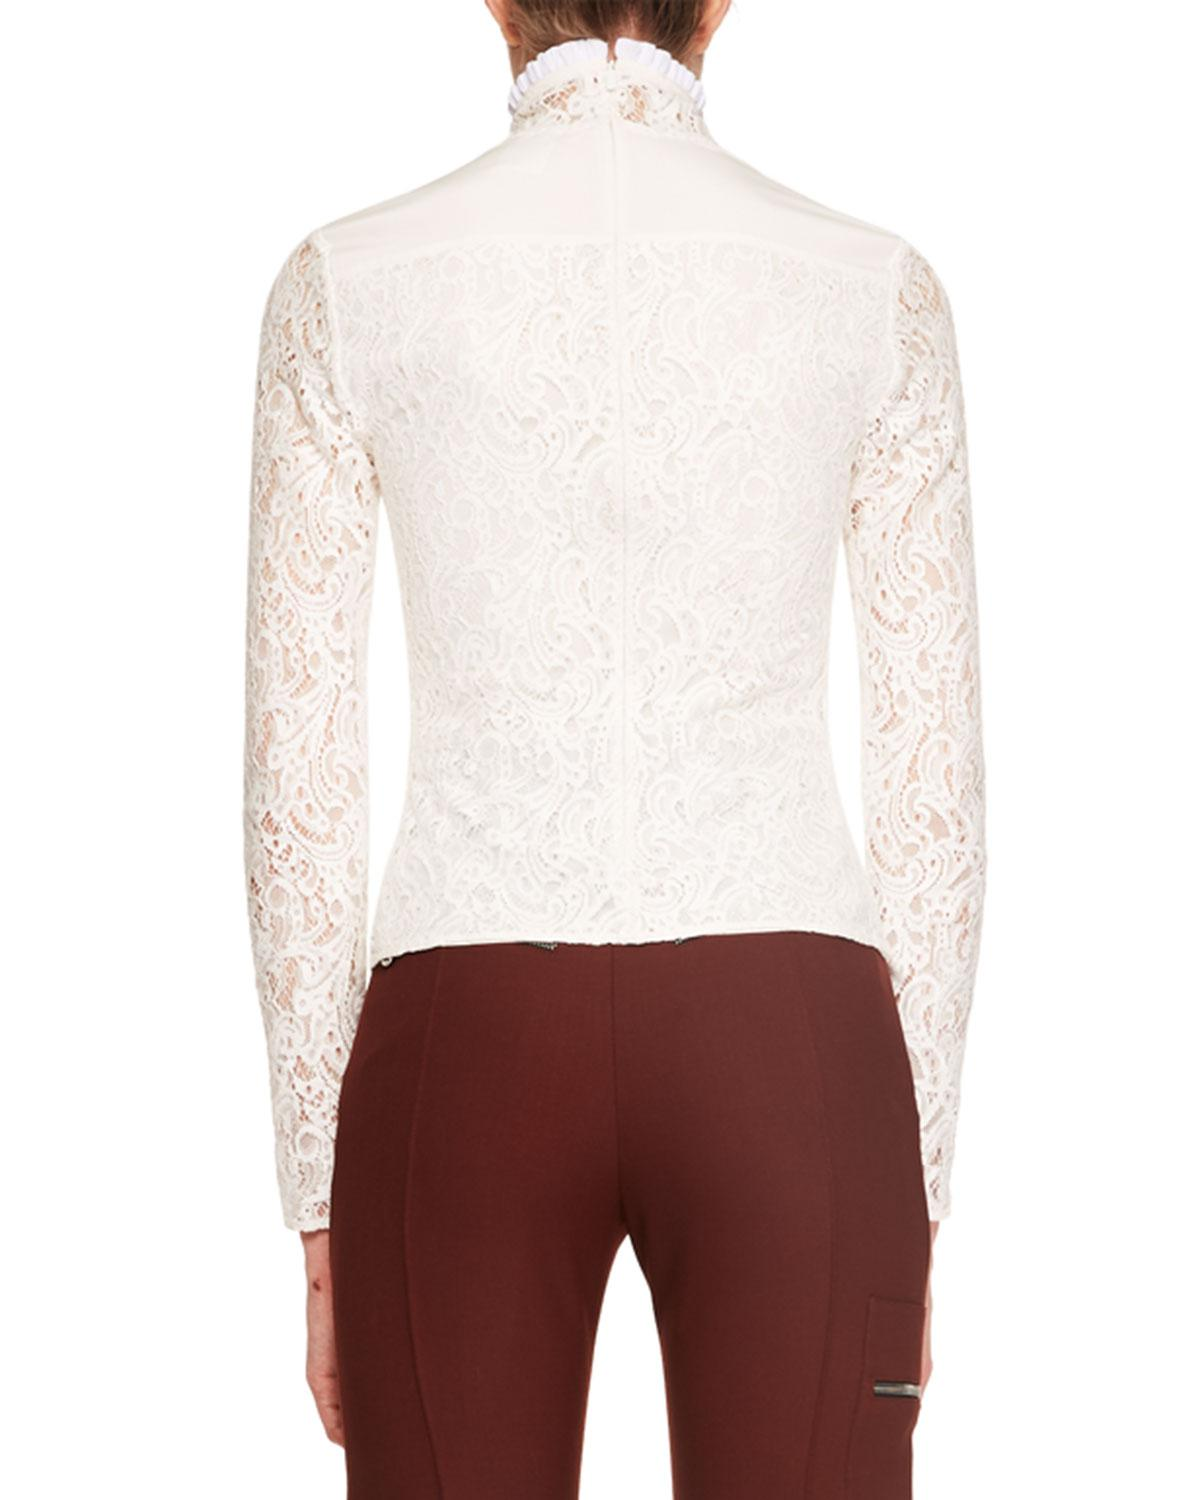 db7ab4f4191 Chloé Long-sleeve Lace Turtleneck Top in White - Lyst